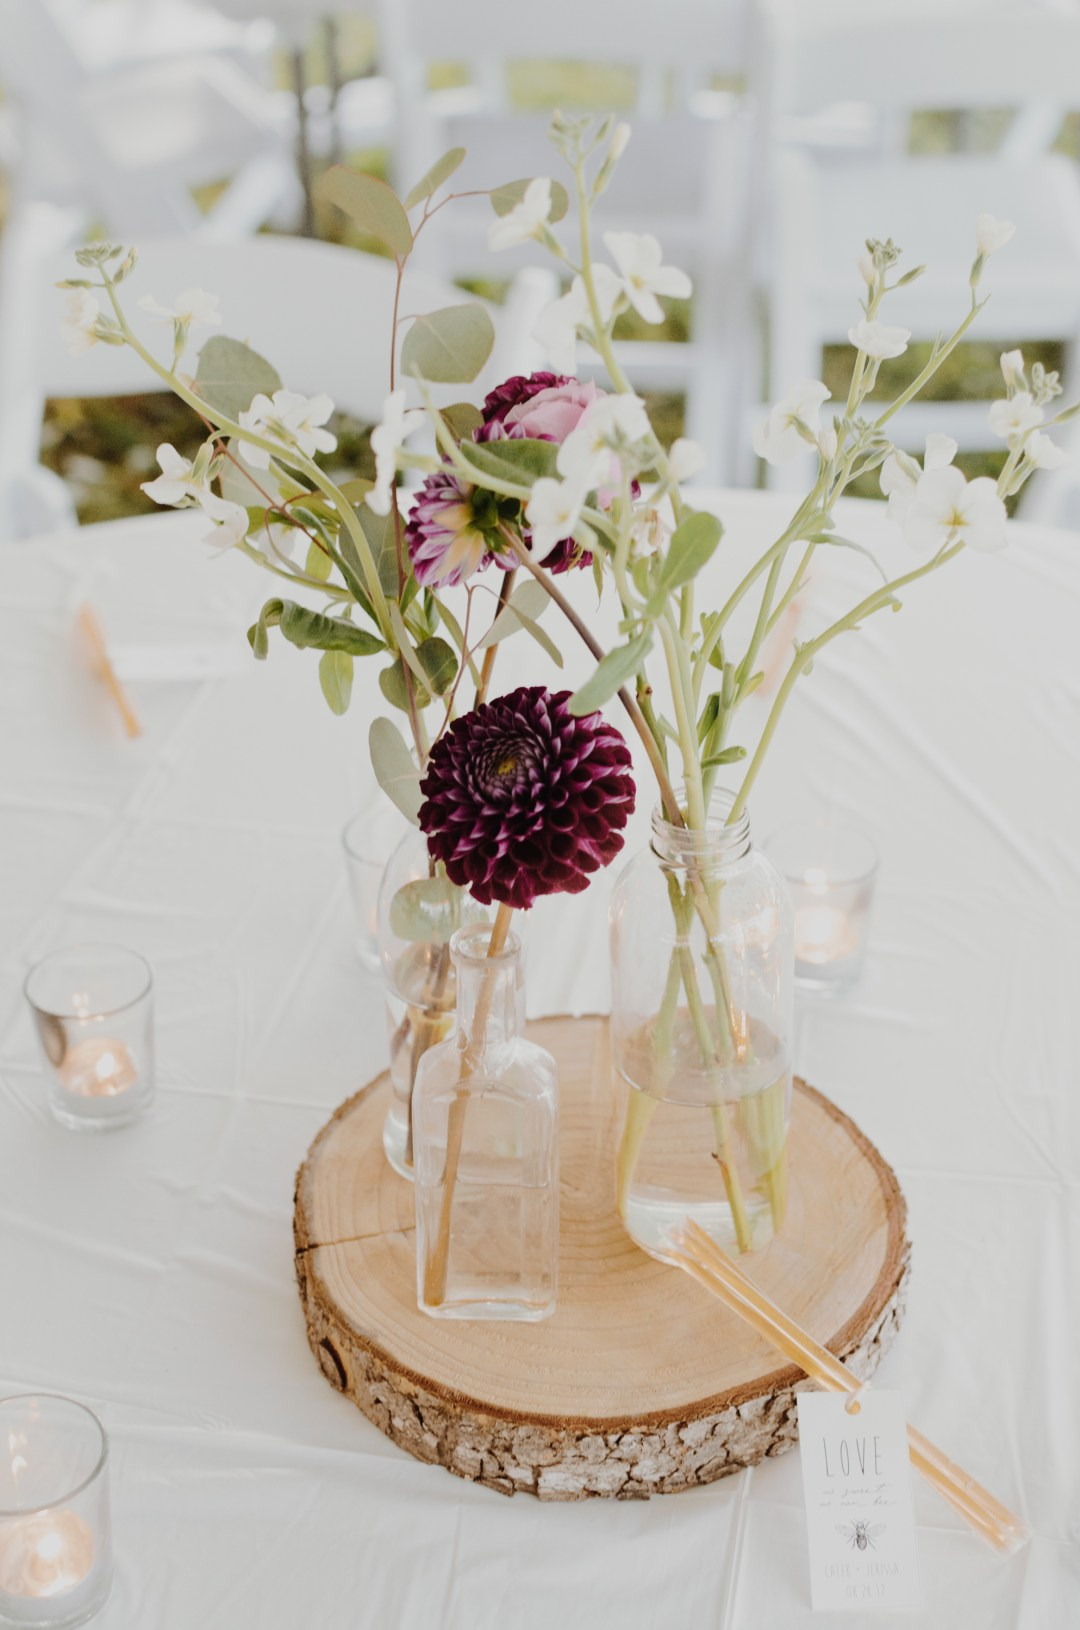 Wedding Reception Centerpiece photo by Kelly Sikkema